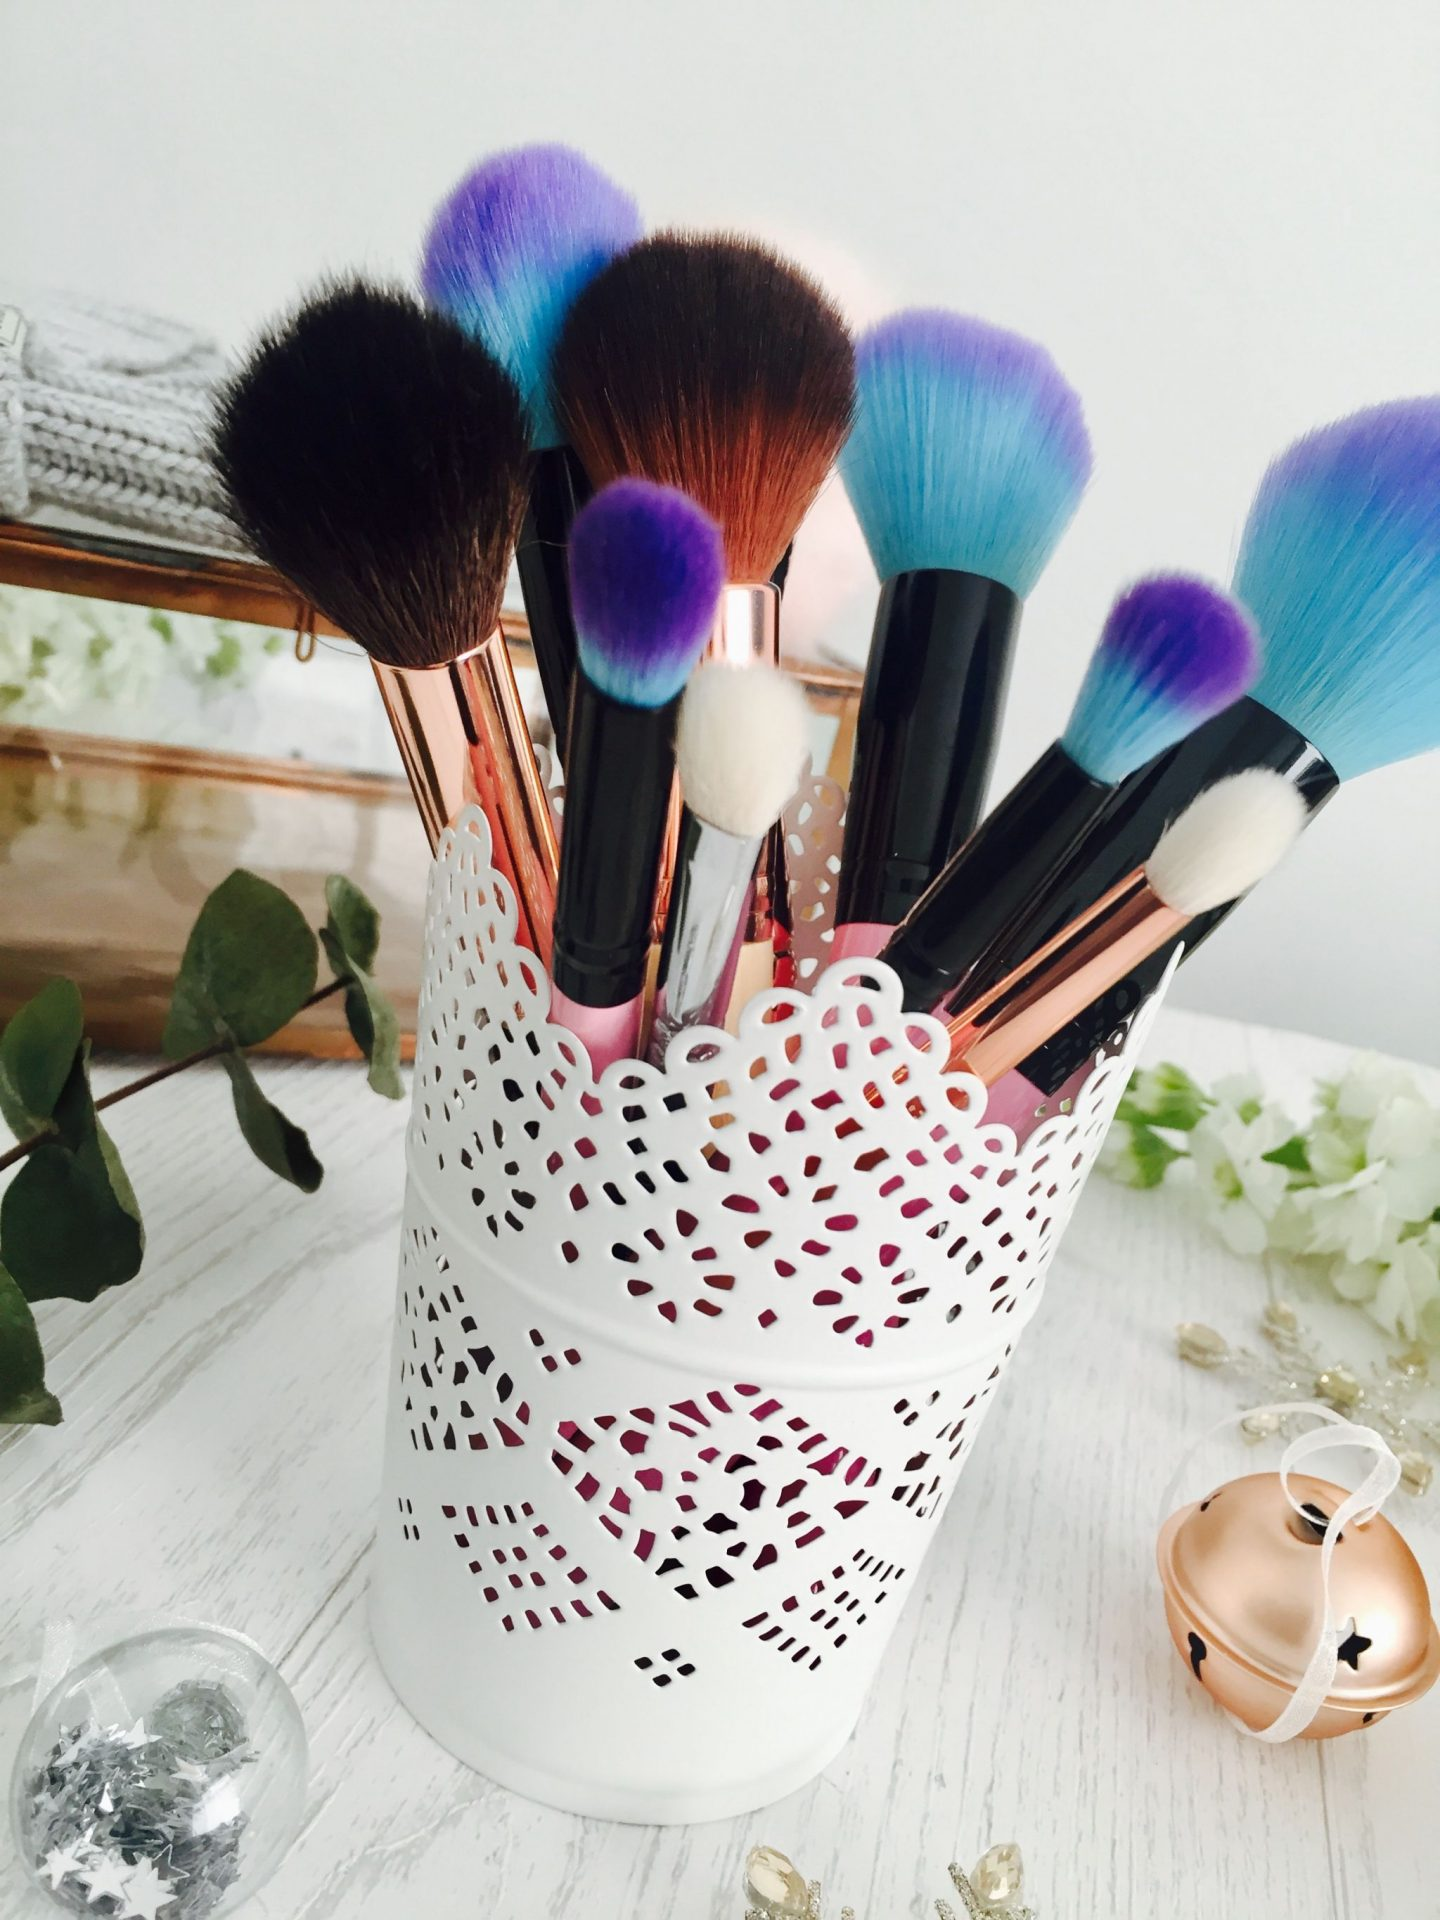 Everyday Makeup Brush Guide Spectrum Zoeva Charlotte Tilbury